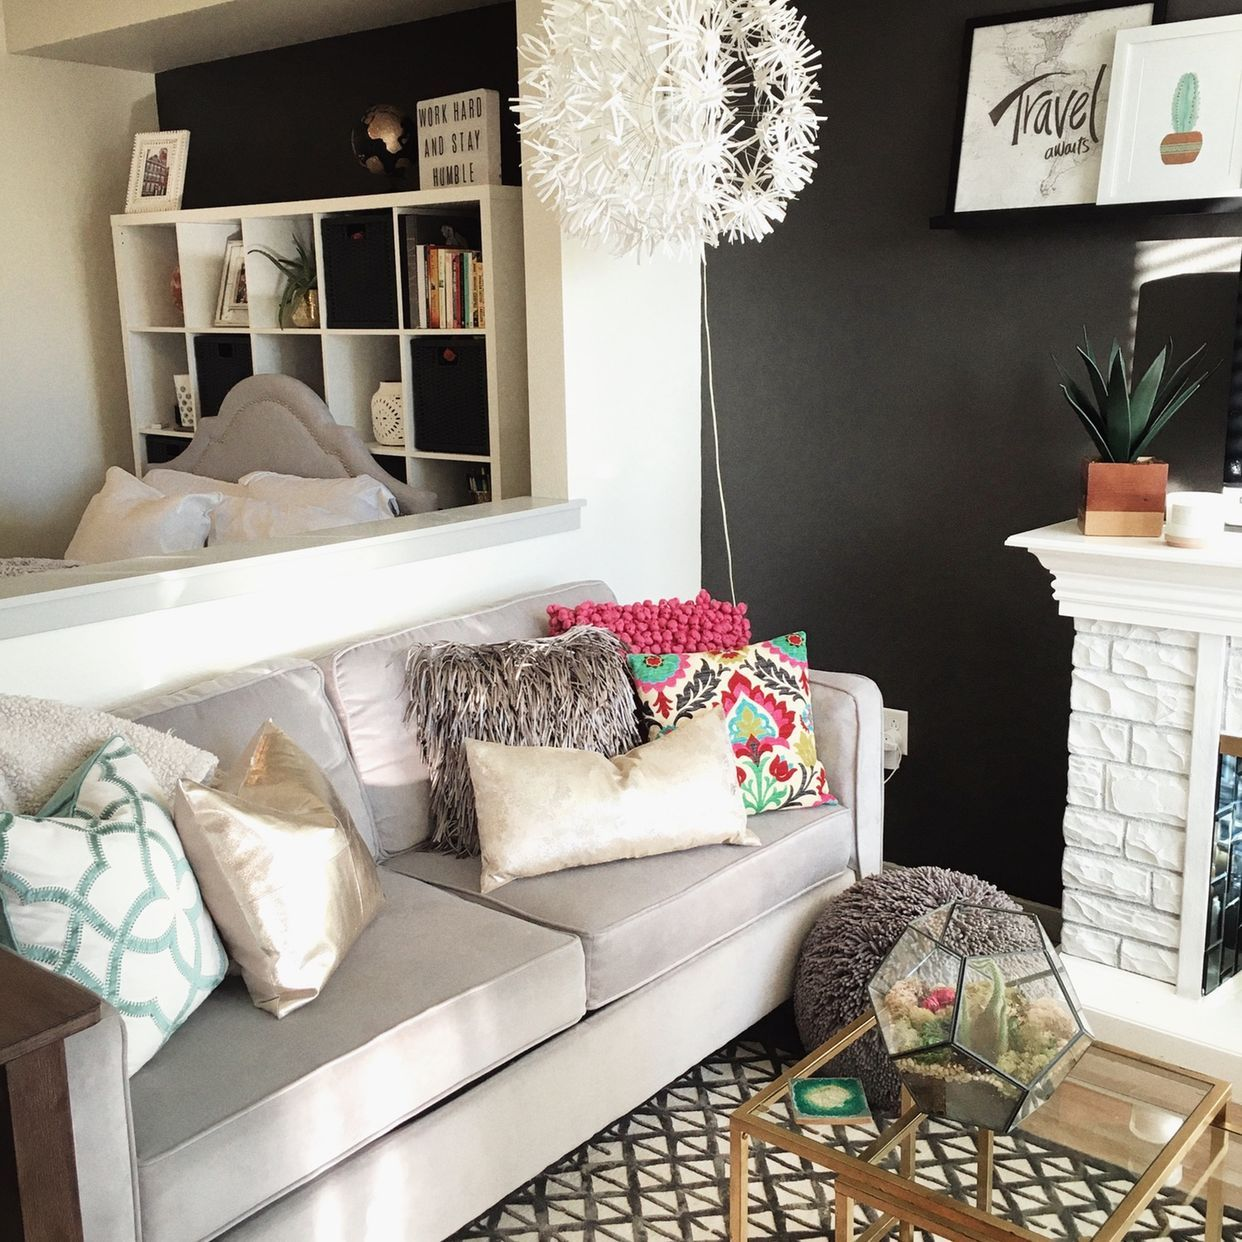 One Bedroom Apartments In Denver Colorado: One Woman And Her Dachshund Share A Stylish Studio In